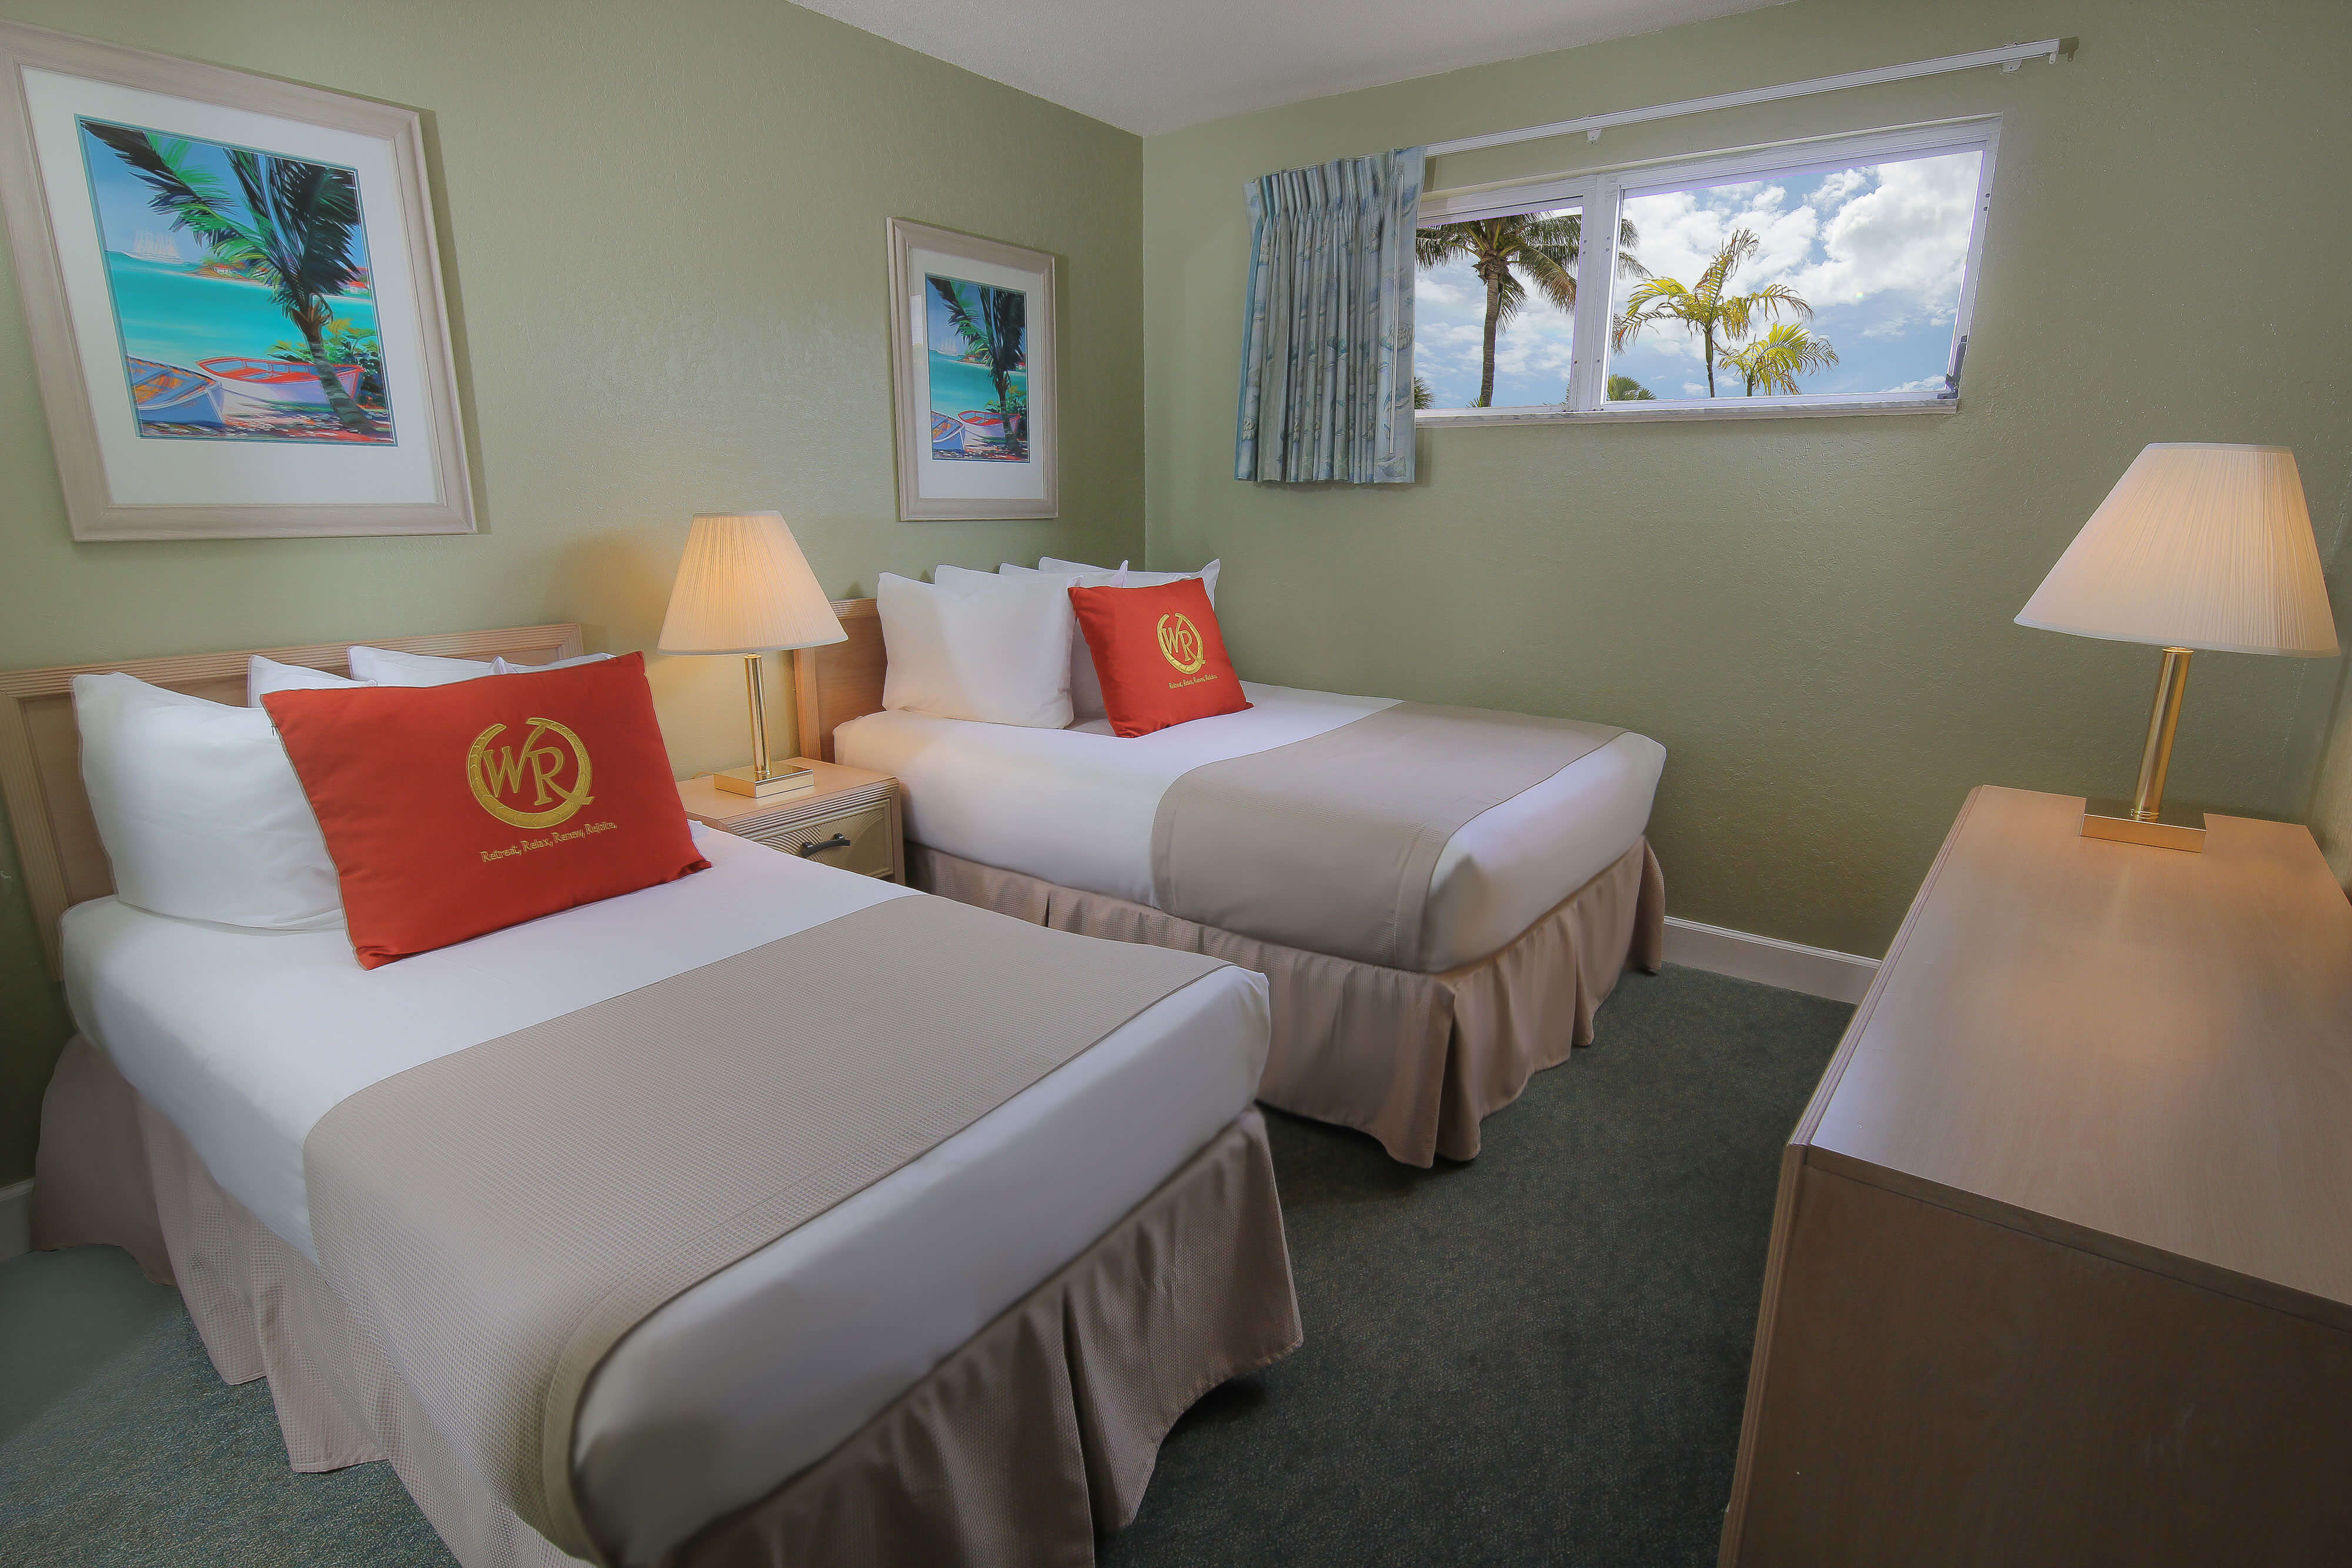 Beds in Two Bedroom Beachside Villa in our 2 Bedroom Suites in Cocoa Beach | Wakulla Suites A Westgate Resort | Westgate Resorts